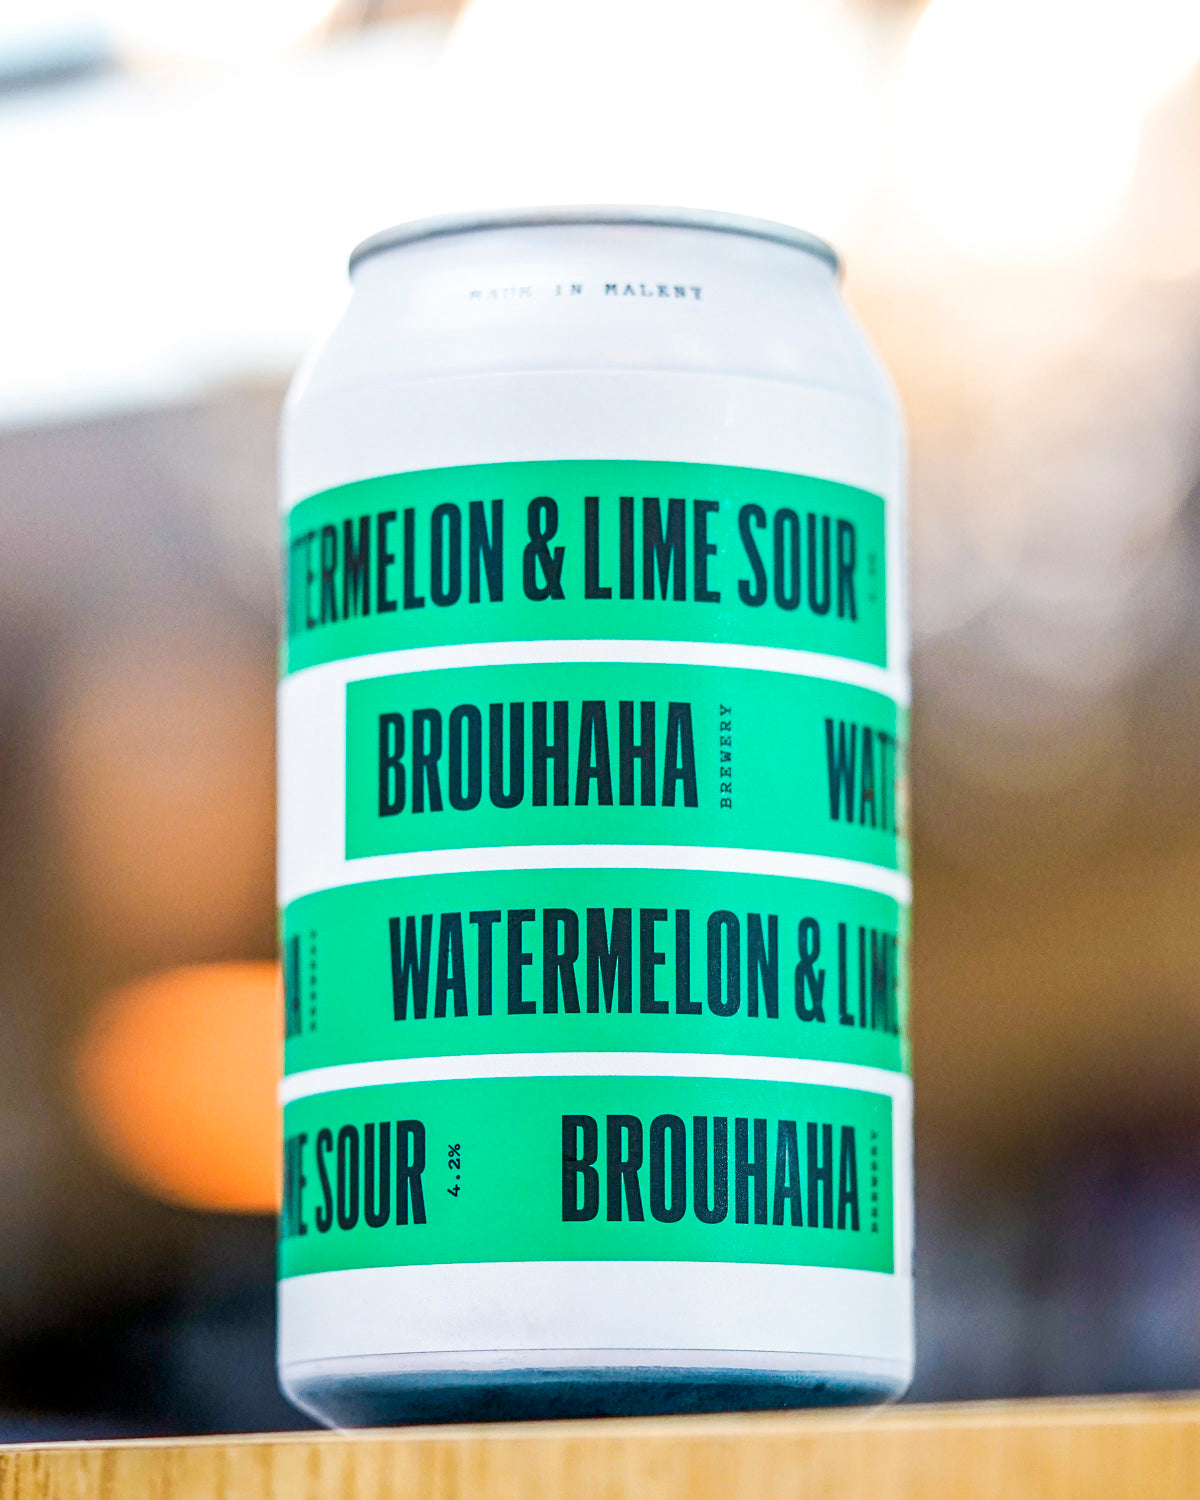 Brouhaha Watermelon & Lime Sour 375mL